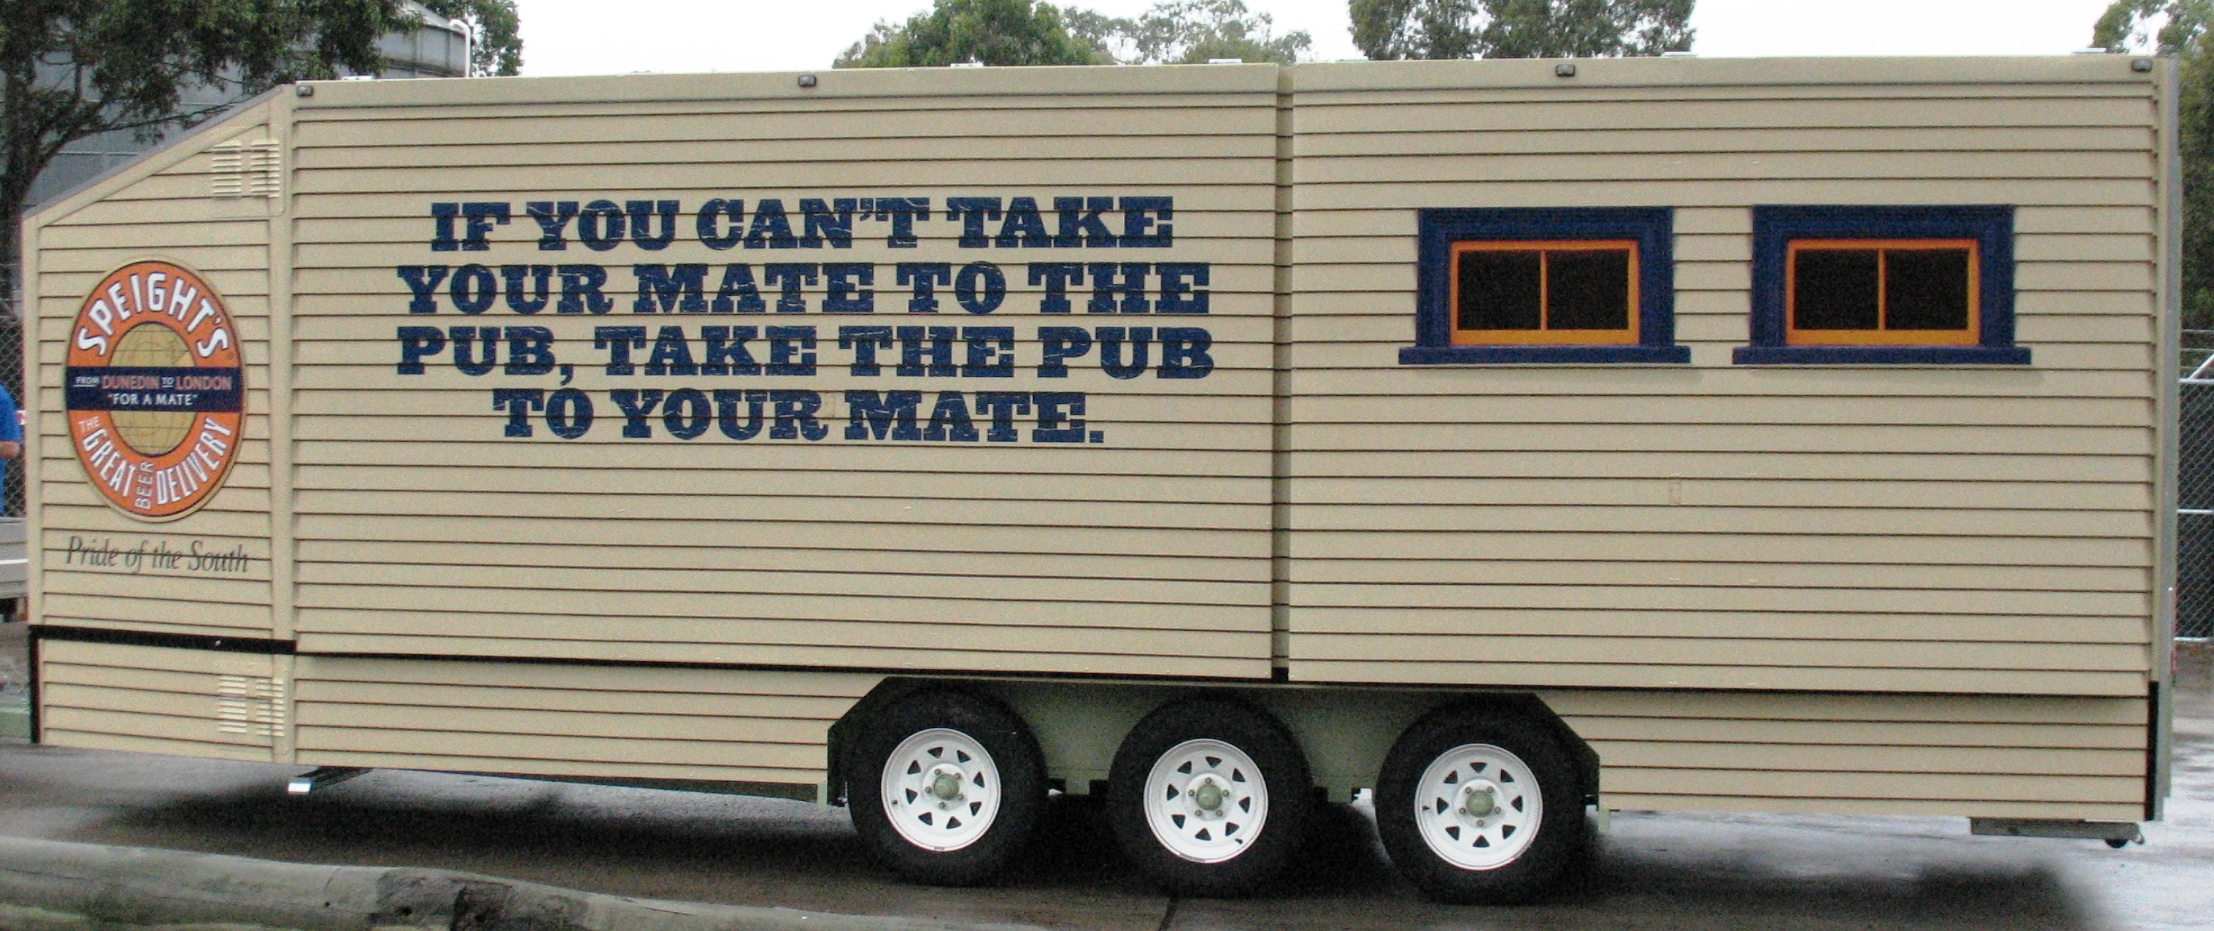 Vehicle-based events. Custom build. Fleet graphics. Vehicle Wraps. Trailer wraps. Speight's Ale House. Lion Nathan. Pride of the South. From Dunedin to London for a mate campaign.